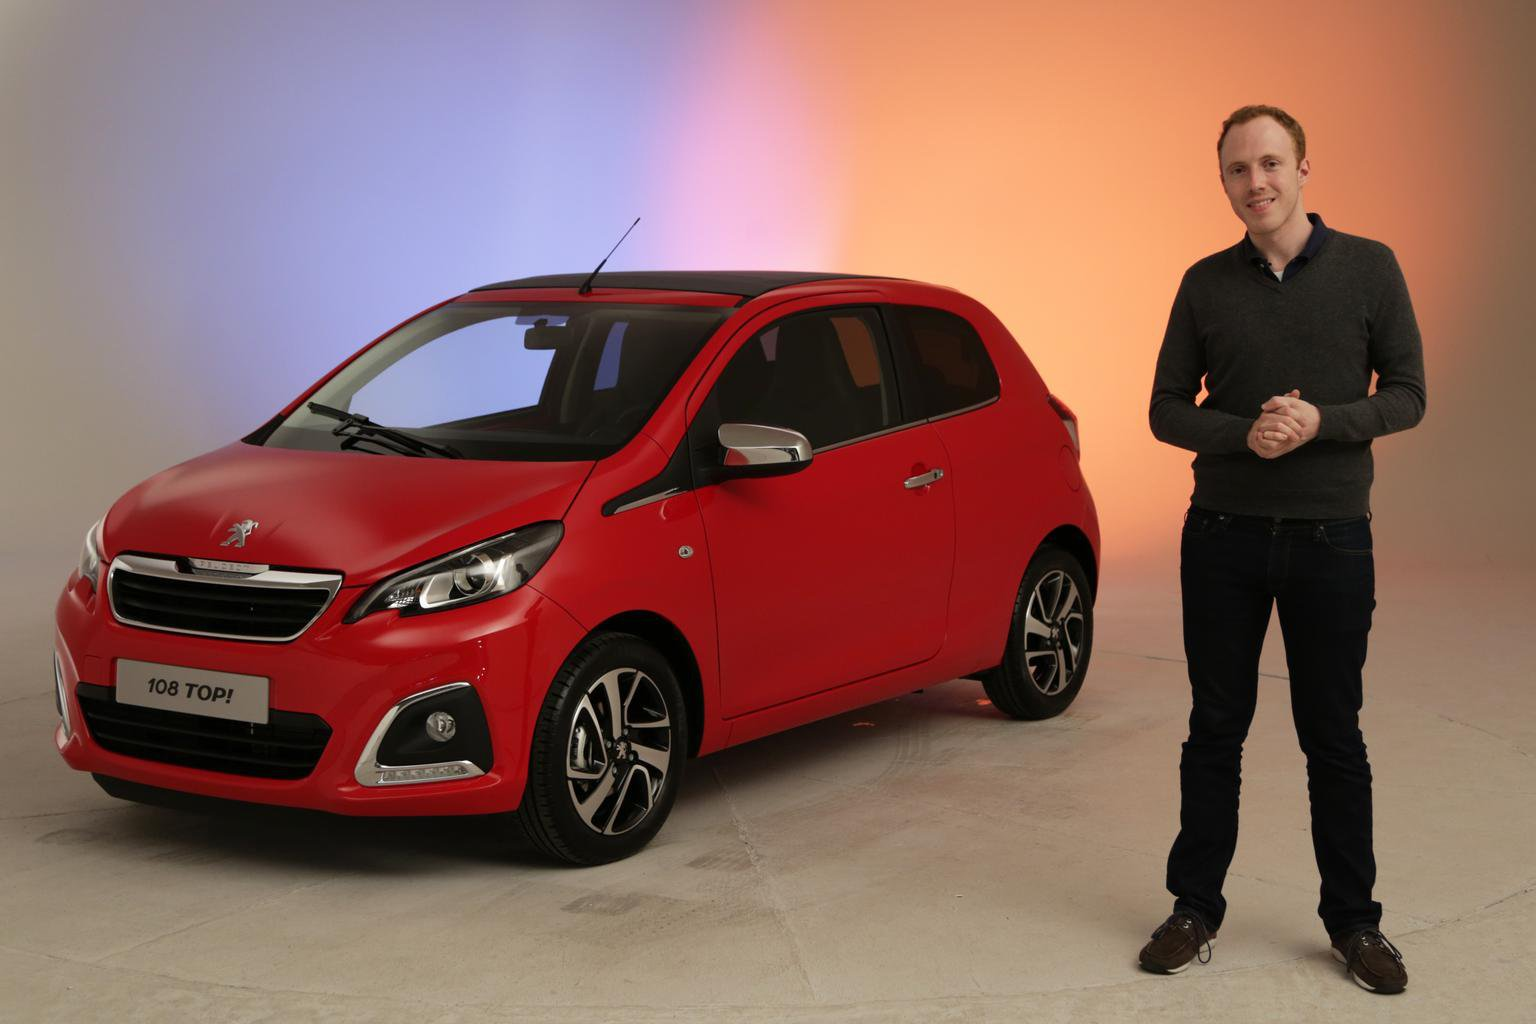 Readers review the 2014 Peugeot 108